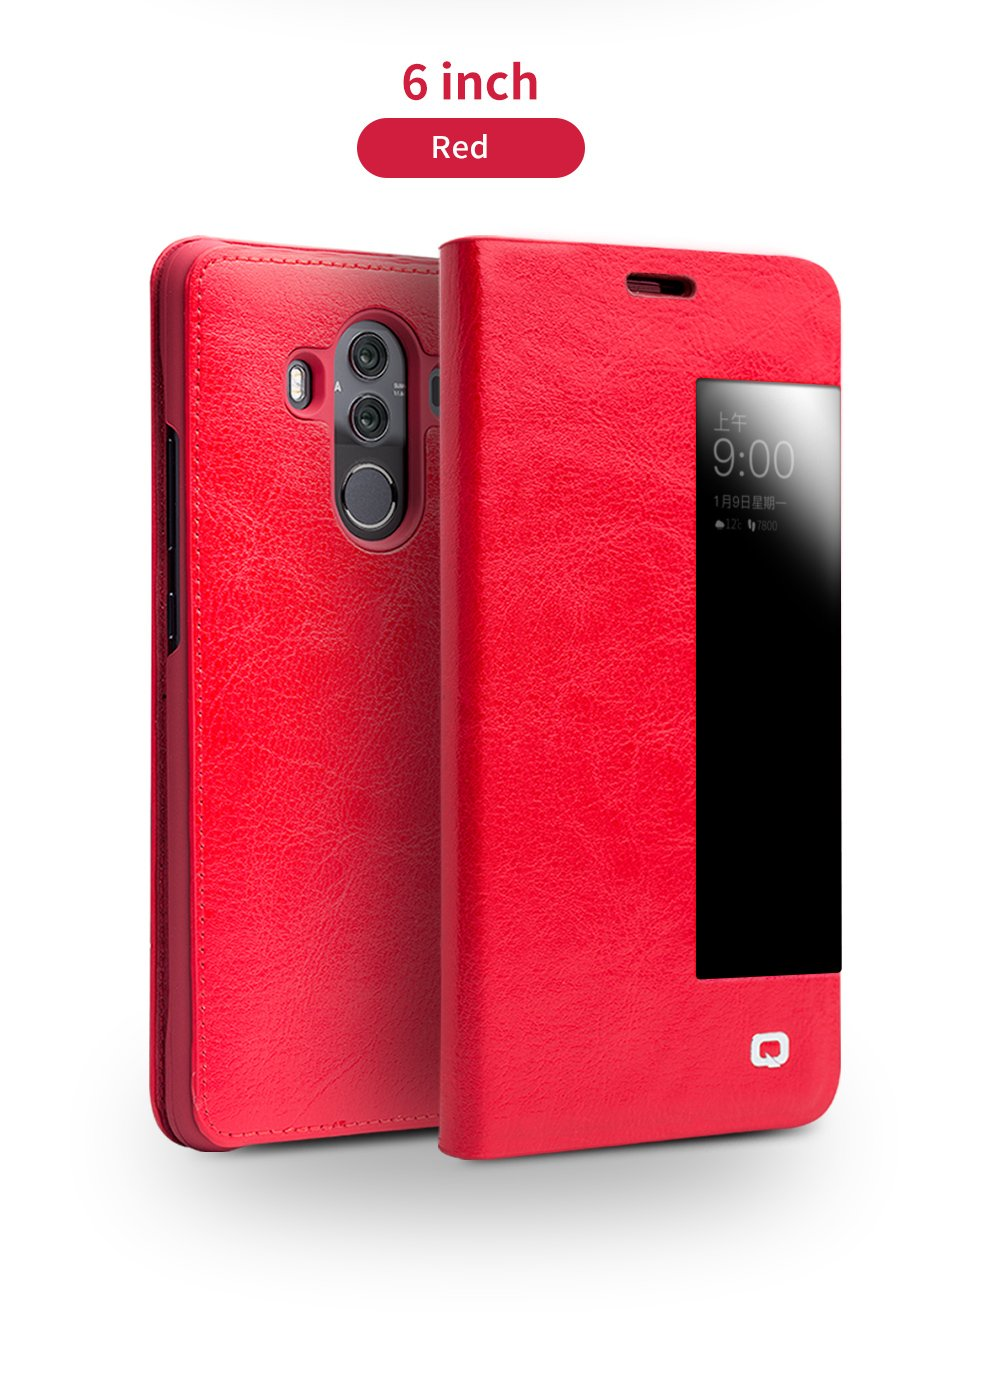 Huawei Mate 10 Pro Case, QIALINO Slim Flip Genuine Leather Smart Cover Mate 10 Pro Protector (with Smart Window and Auto Screen Sleep/Wake) for Huawei Mate10 Pro, Red